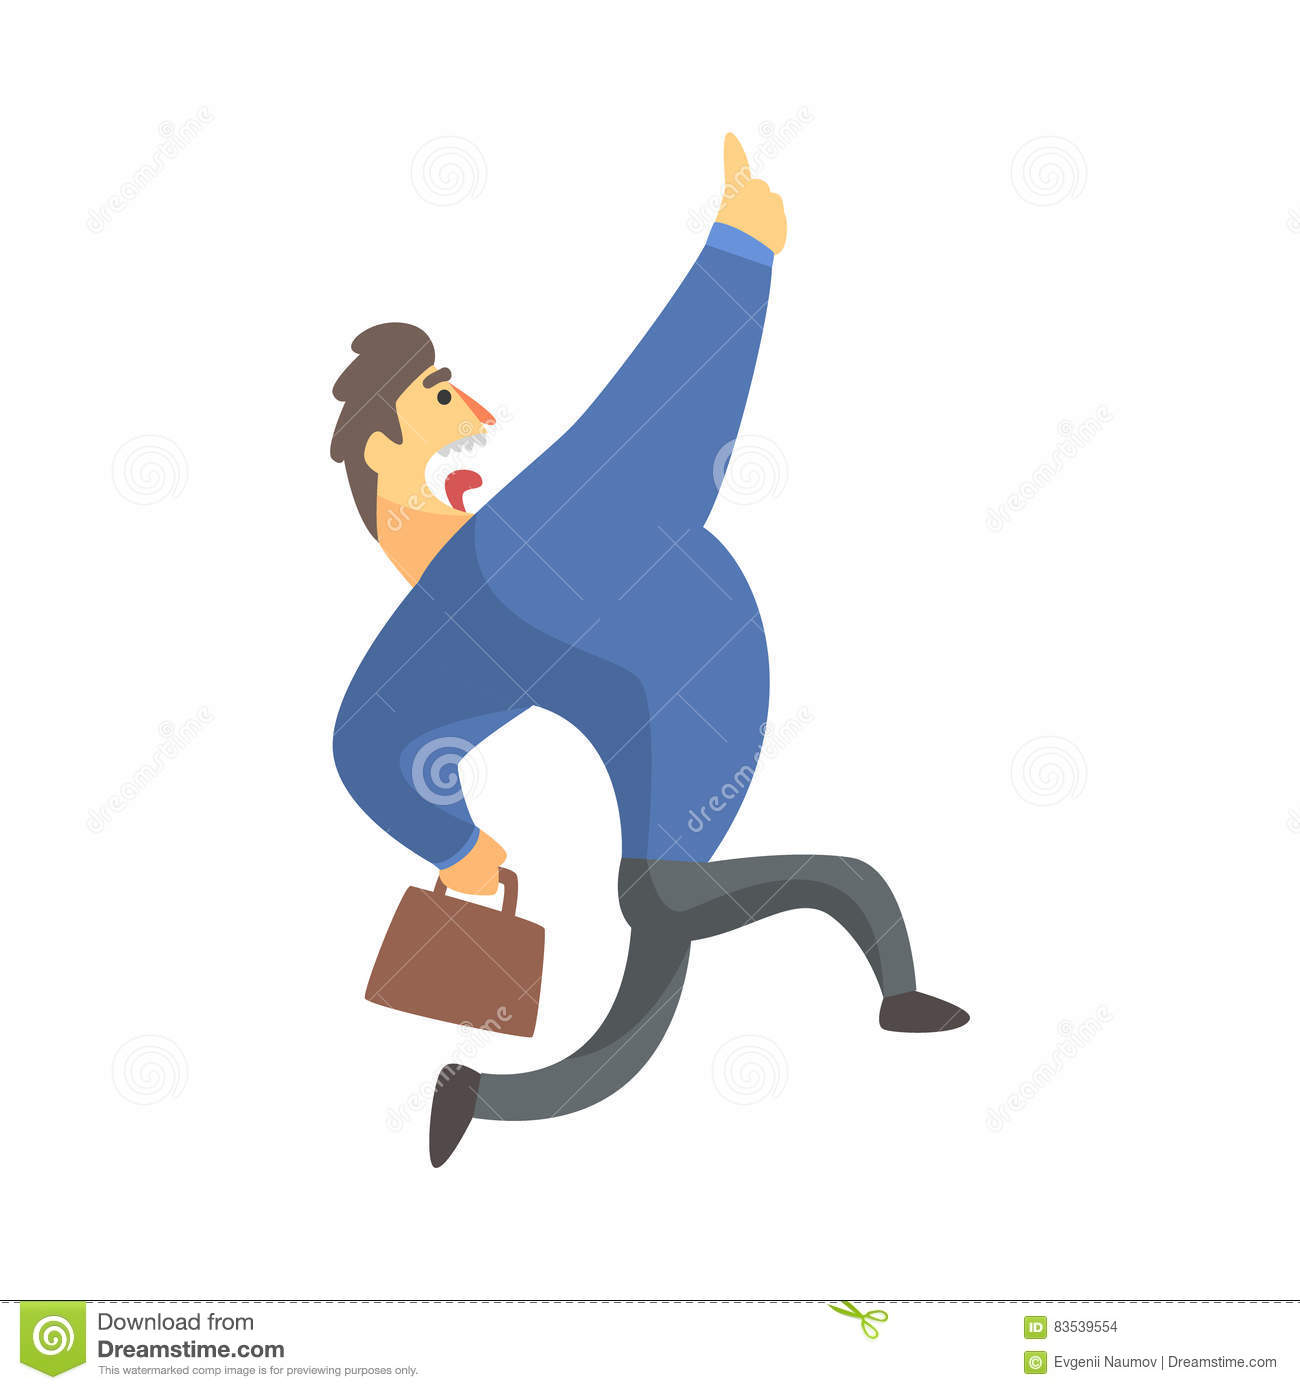 businessman top manager in a suit catching taxi office job businessman top manager in a suit running screaming office job situation illustration stock images